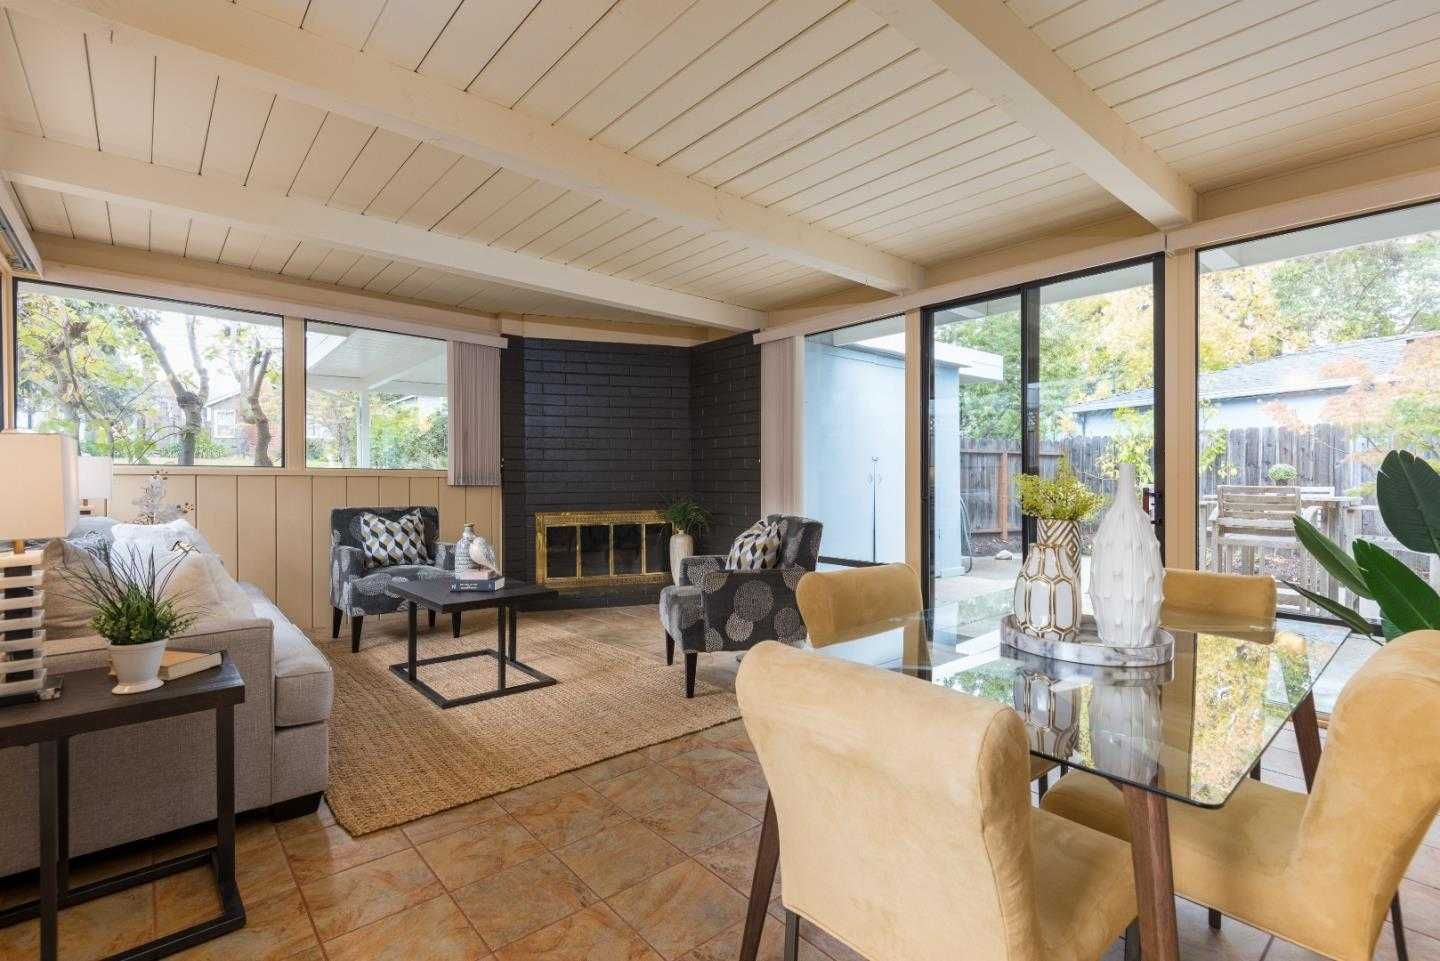 $1,849,000 - 4Br/2Ba -  for Sale in San Carlos